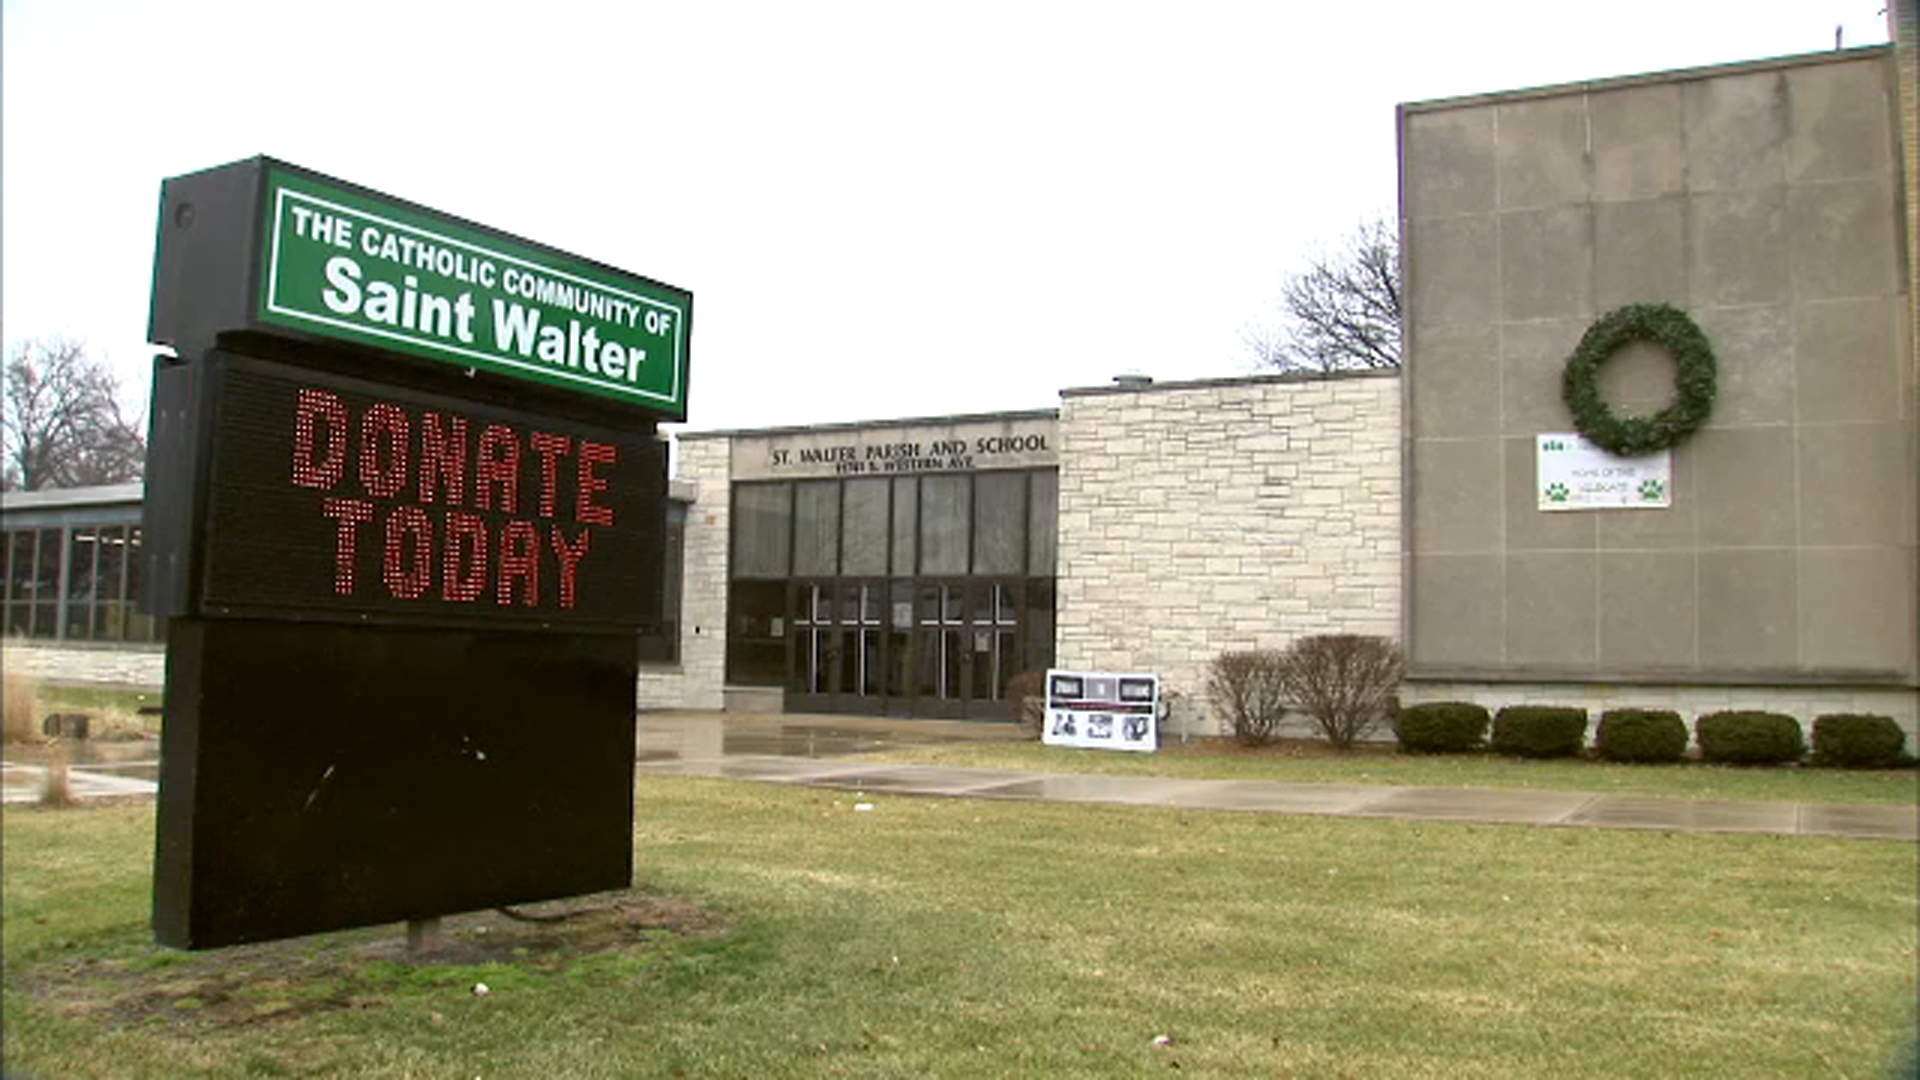 Thanks to generous contributions, St. Walter Elementary School on Chicagos South Side will stay open.